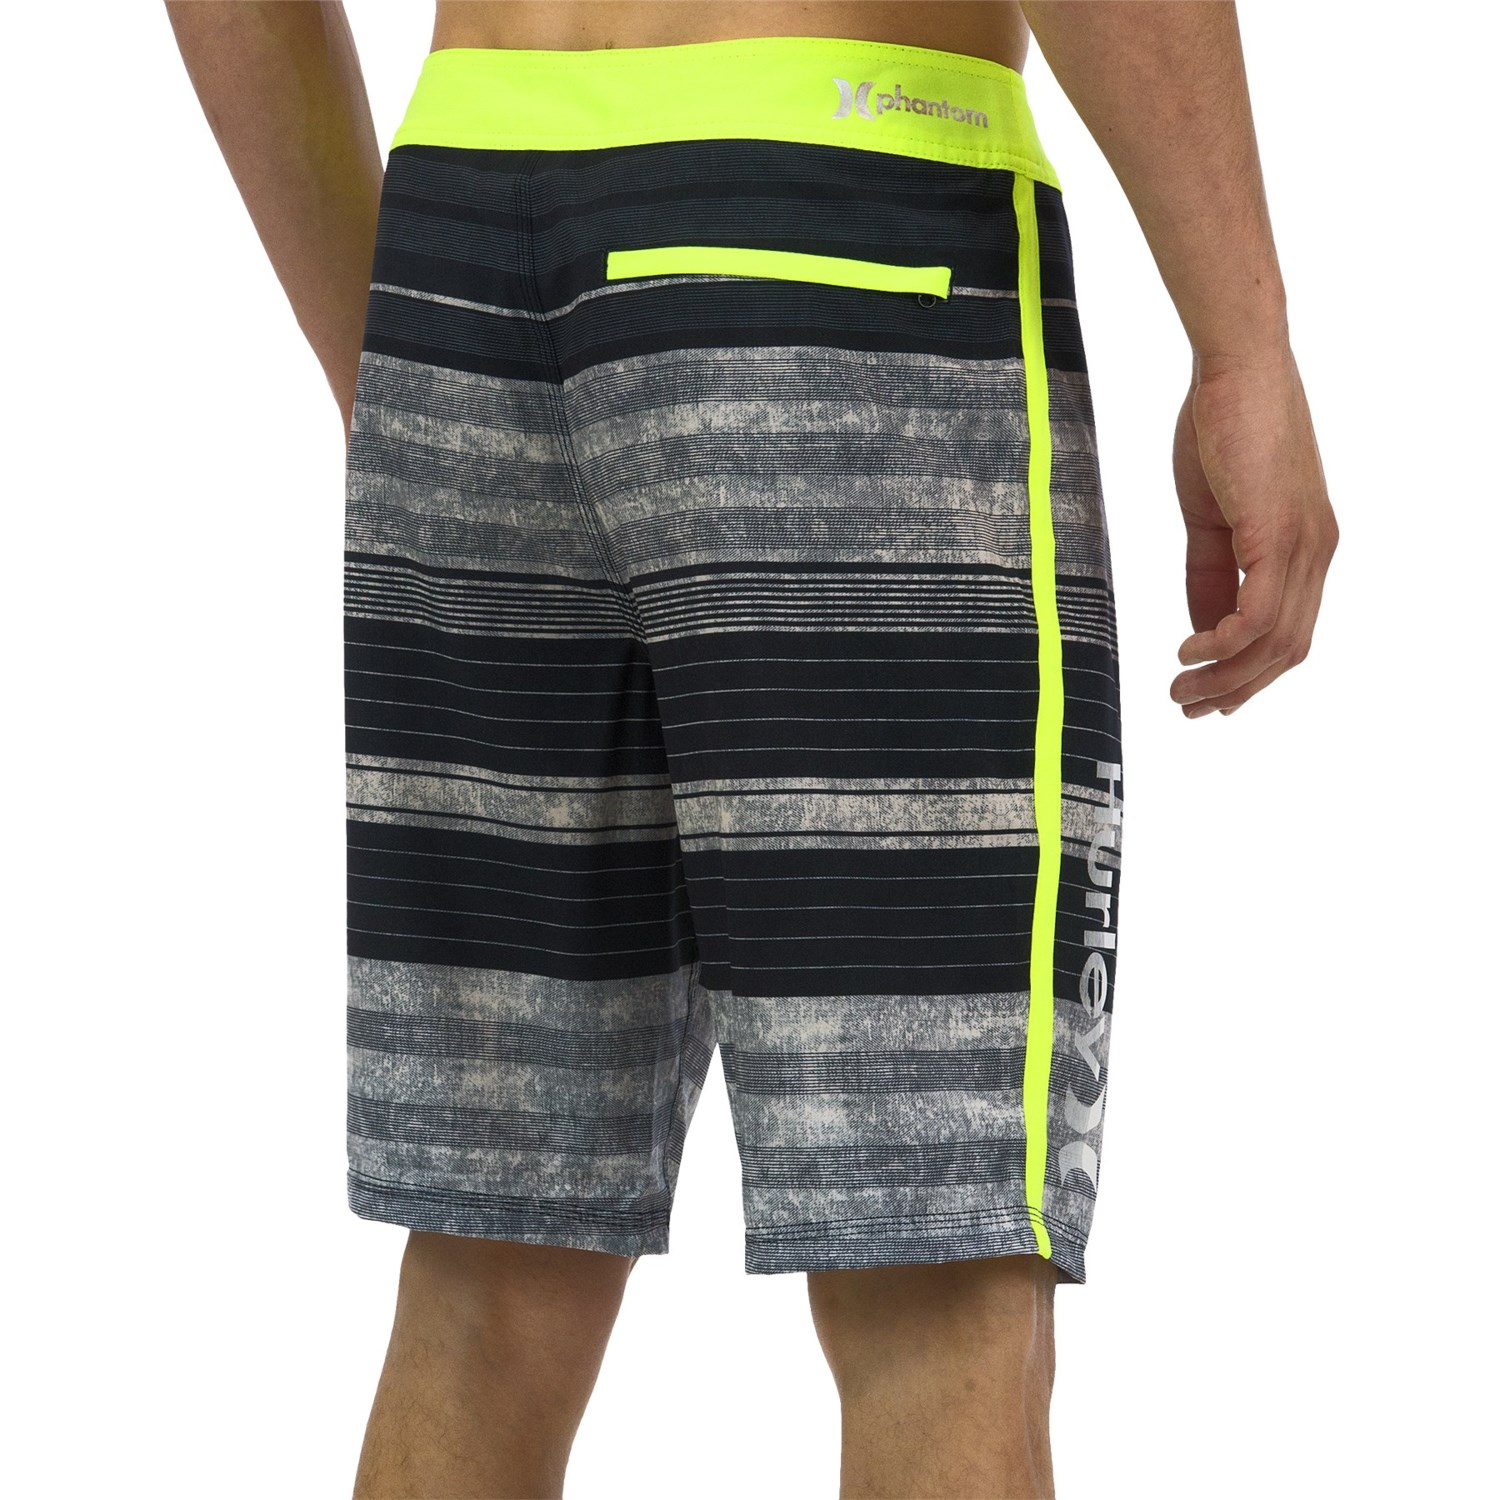 hurley guys Free shipping both ways on hurley, hats, men, from our vast selection of styles fast delivery, and 24/7/365 real-person service with a smile click or call 800-927-7671.